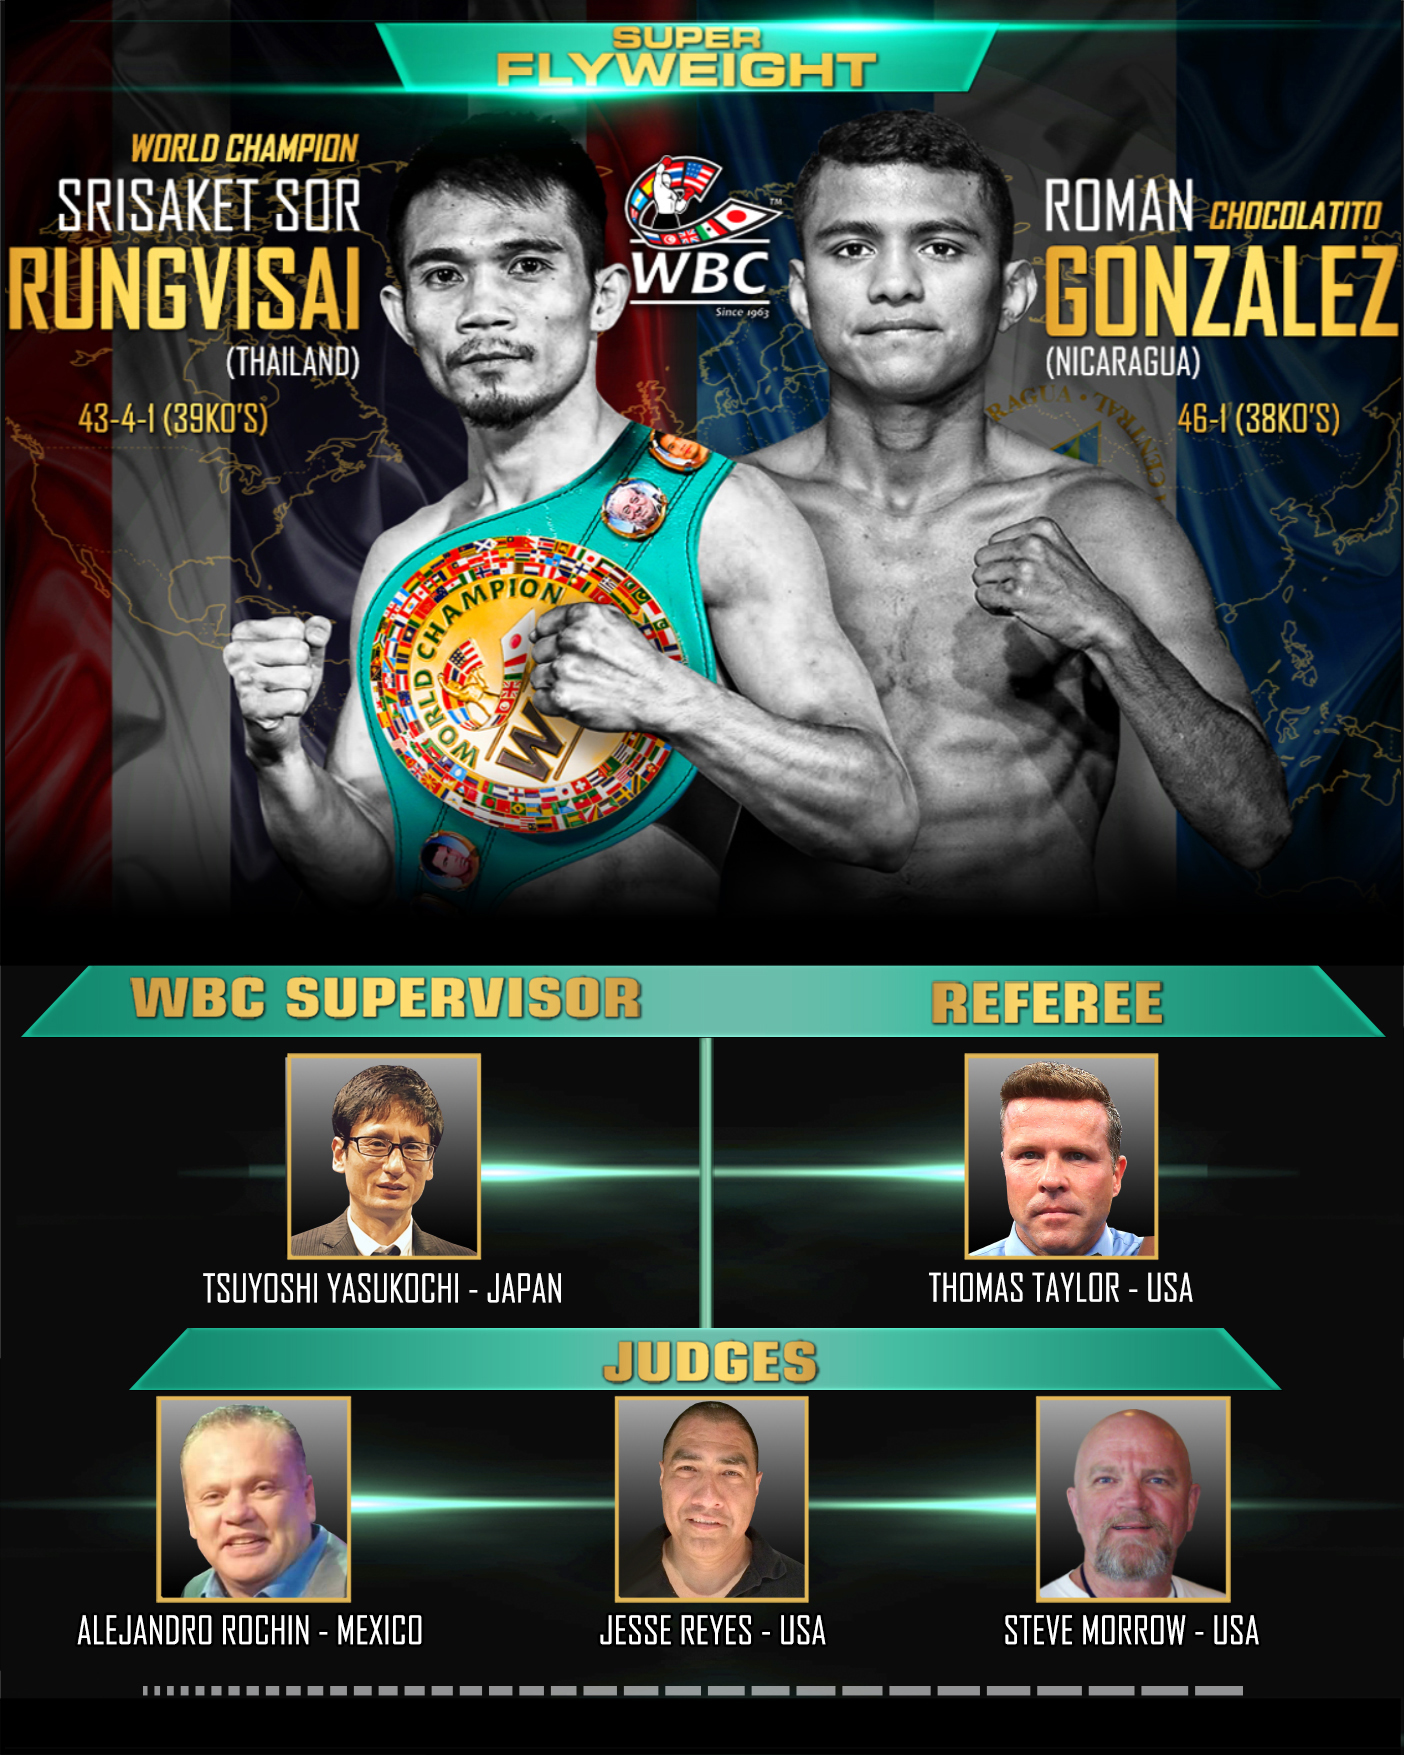 SRISAKET-RUMGVISAI-VS-CHOCOLATITO-9SEP17